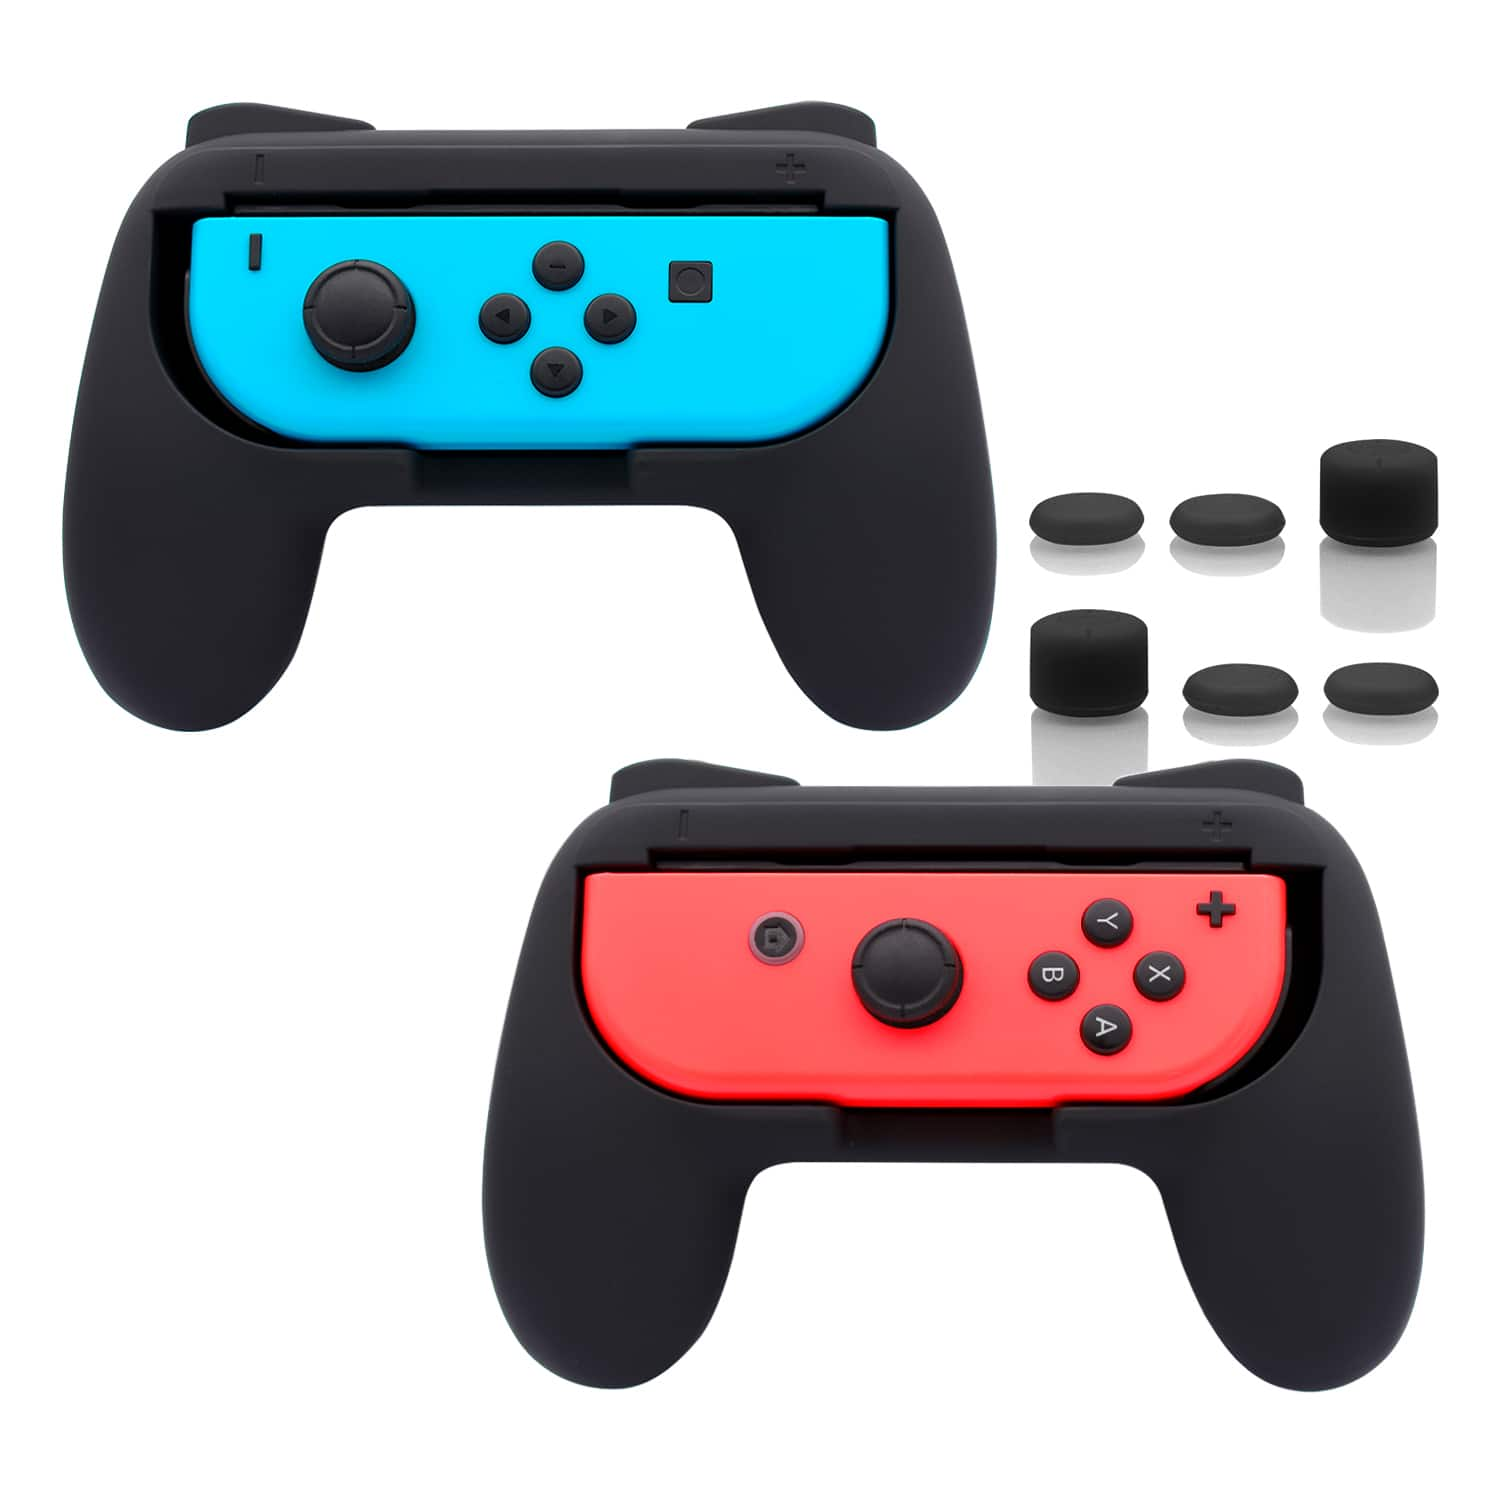 FASTSNAIL Joy Con Handle Grips for Switch $ 9.90 on Amazon $9.9